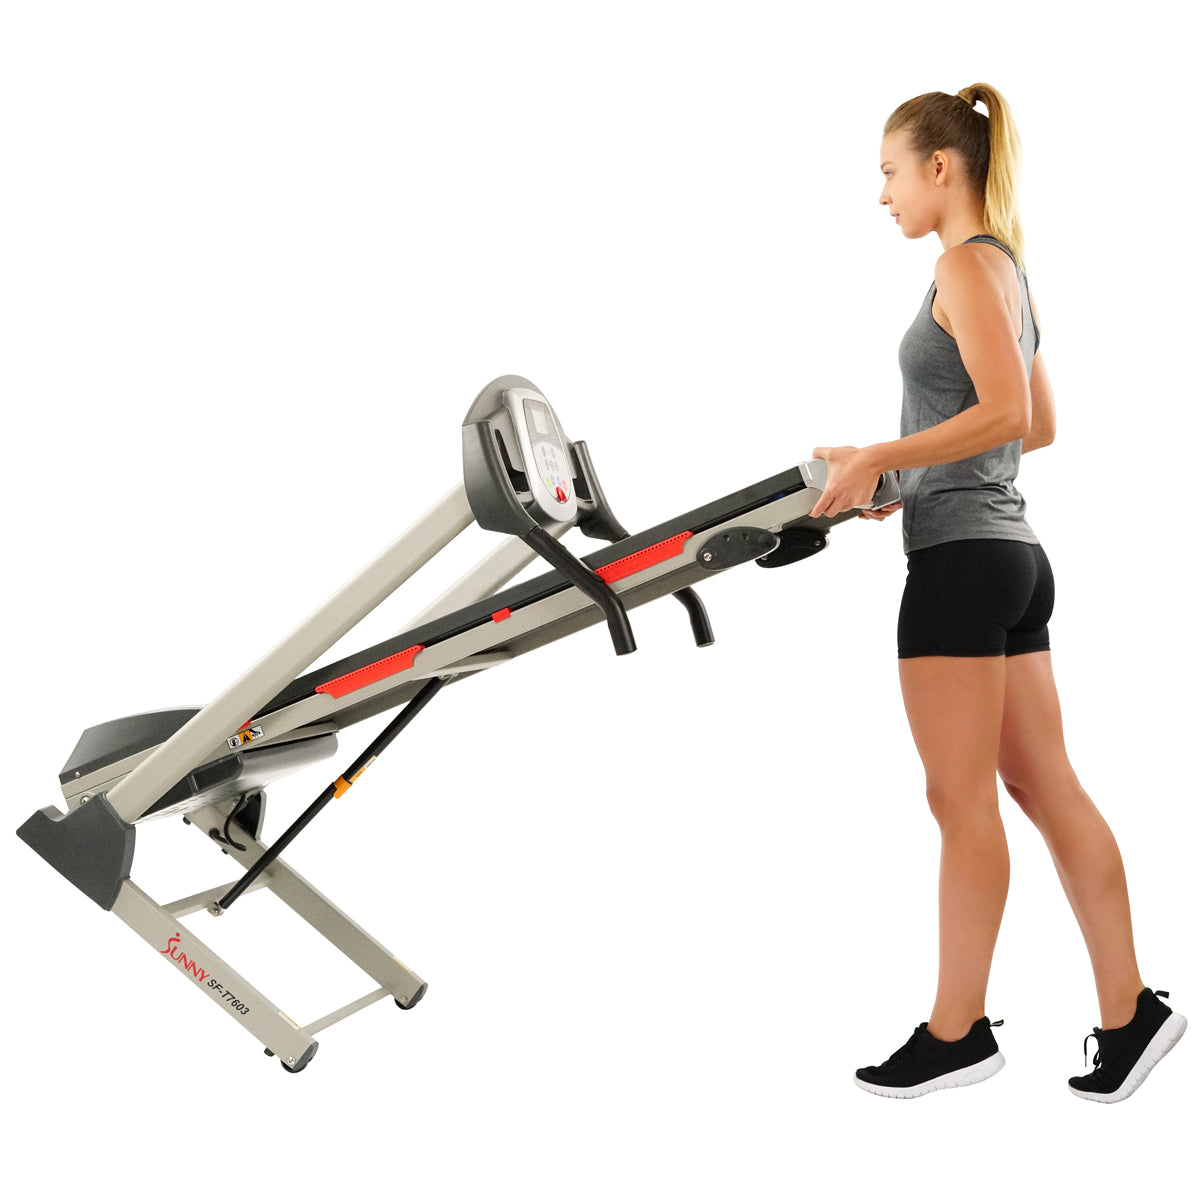 sunny-health-fitness-treadmills-electric-treadmill-9-programs-manual-incline-easy-handrail-controls-preset-button-speeds-SF-T7603-wheels